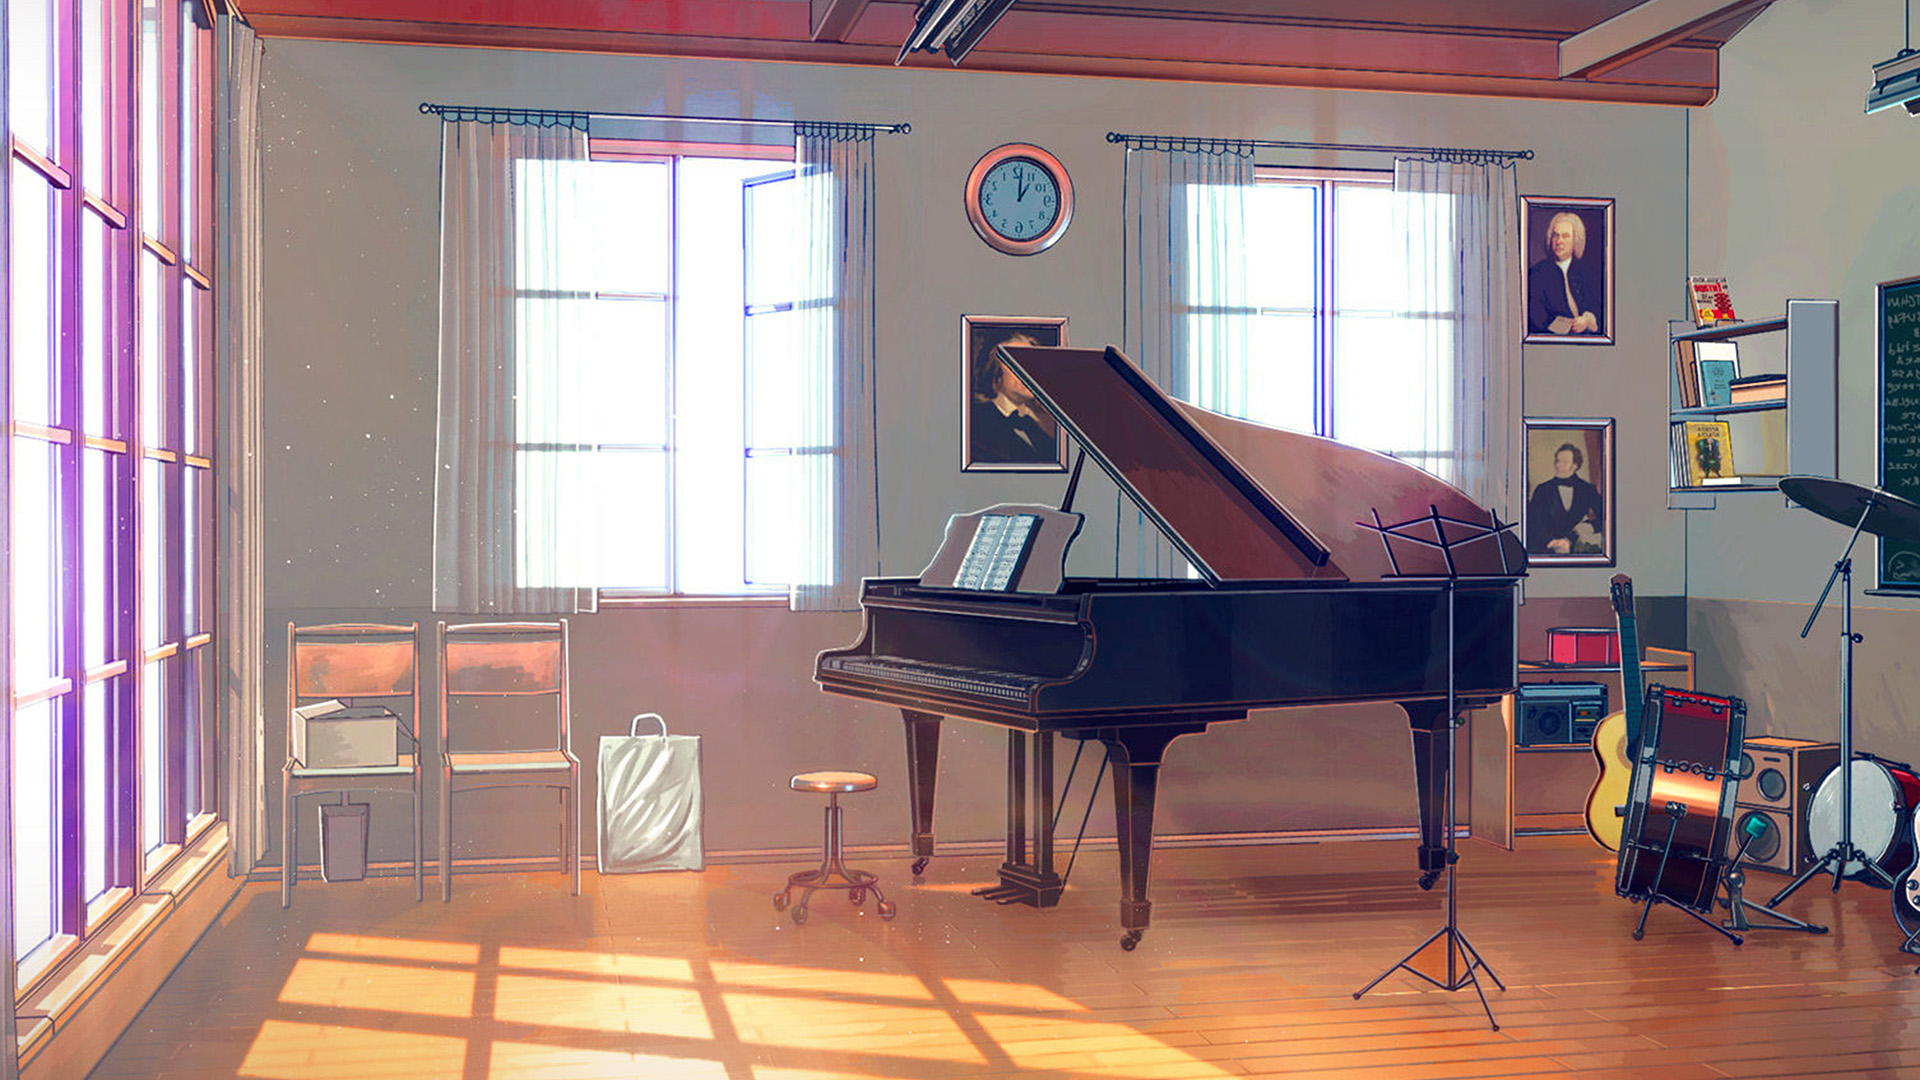 Fall Wallpapers Aw49 Arseniy Chebynkin Music Room Piano Illustration Art